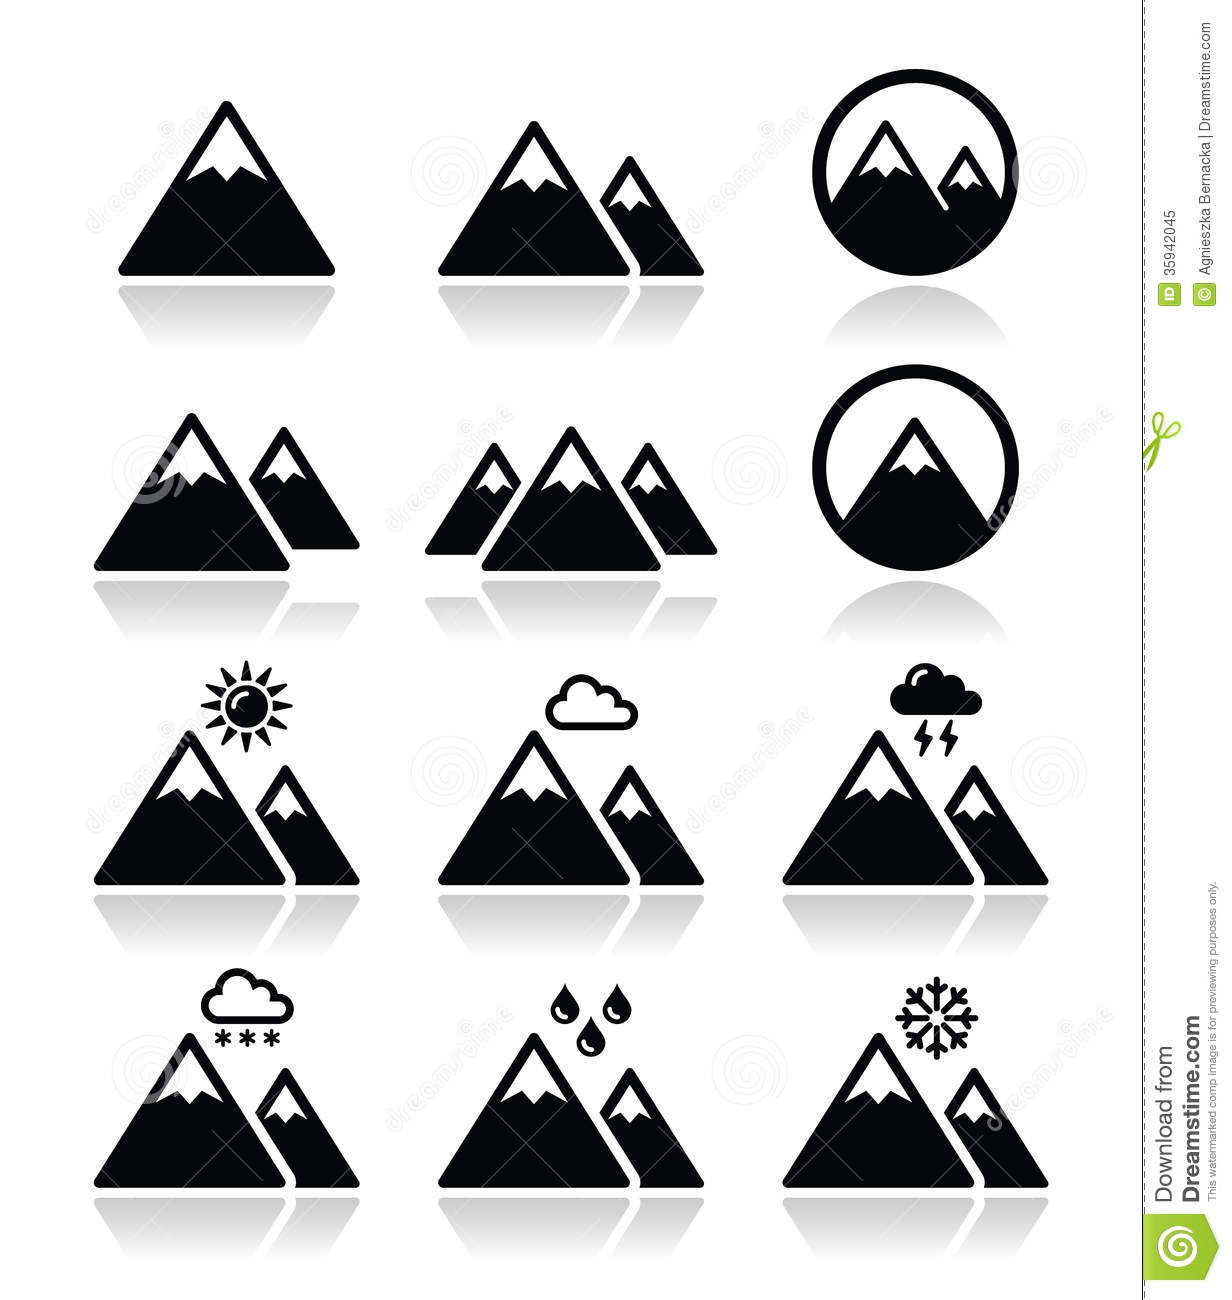 https://thumbs.dreamstime.com/z/mountain-icons-set-vector-landscape-white-35942045.jpg